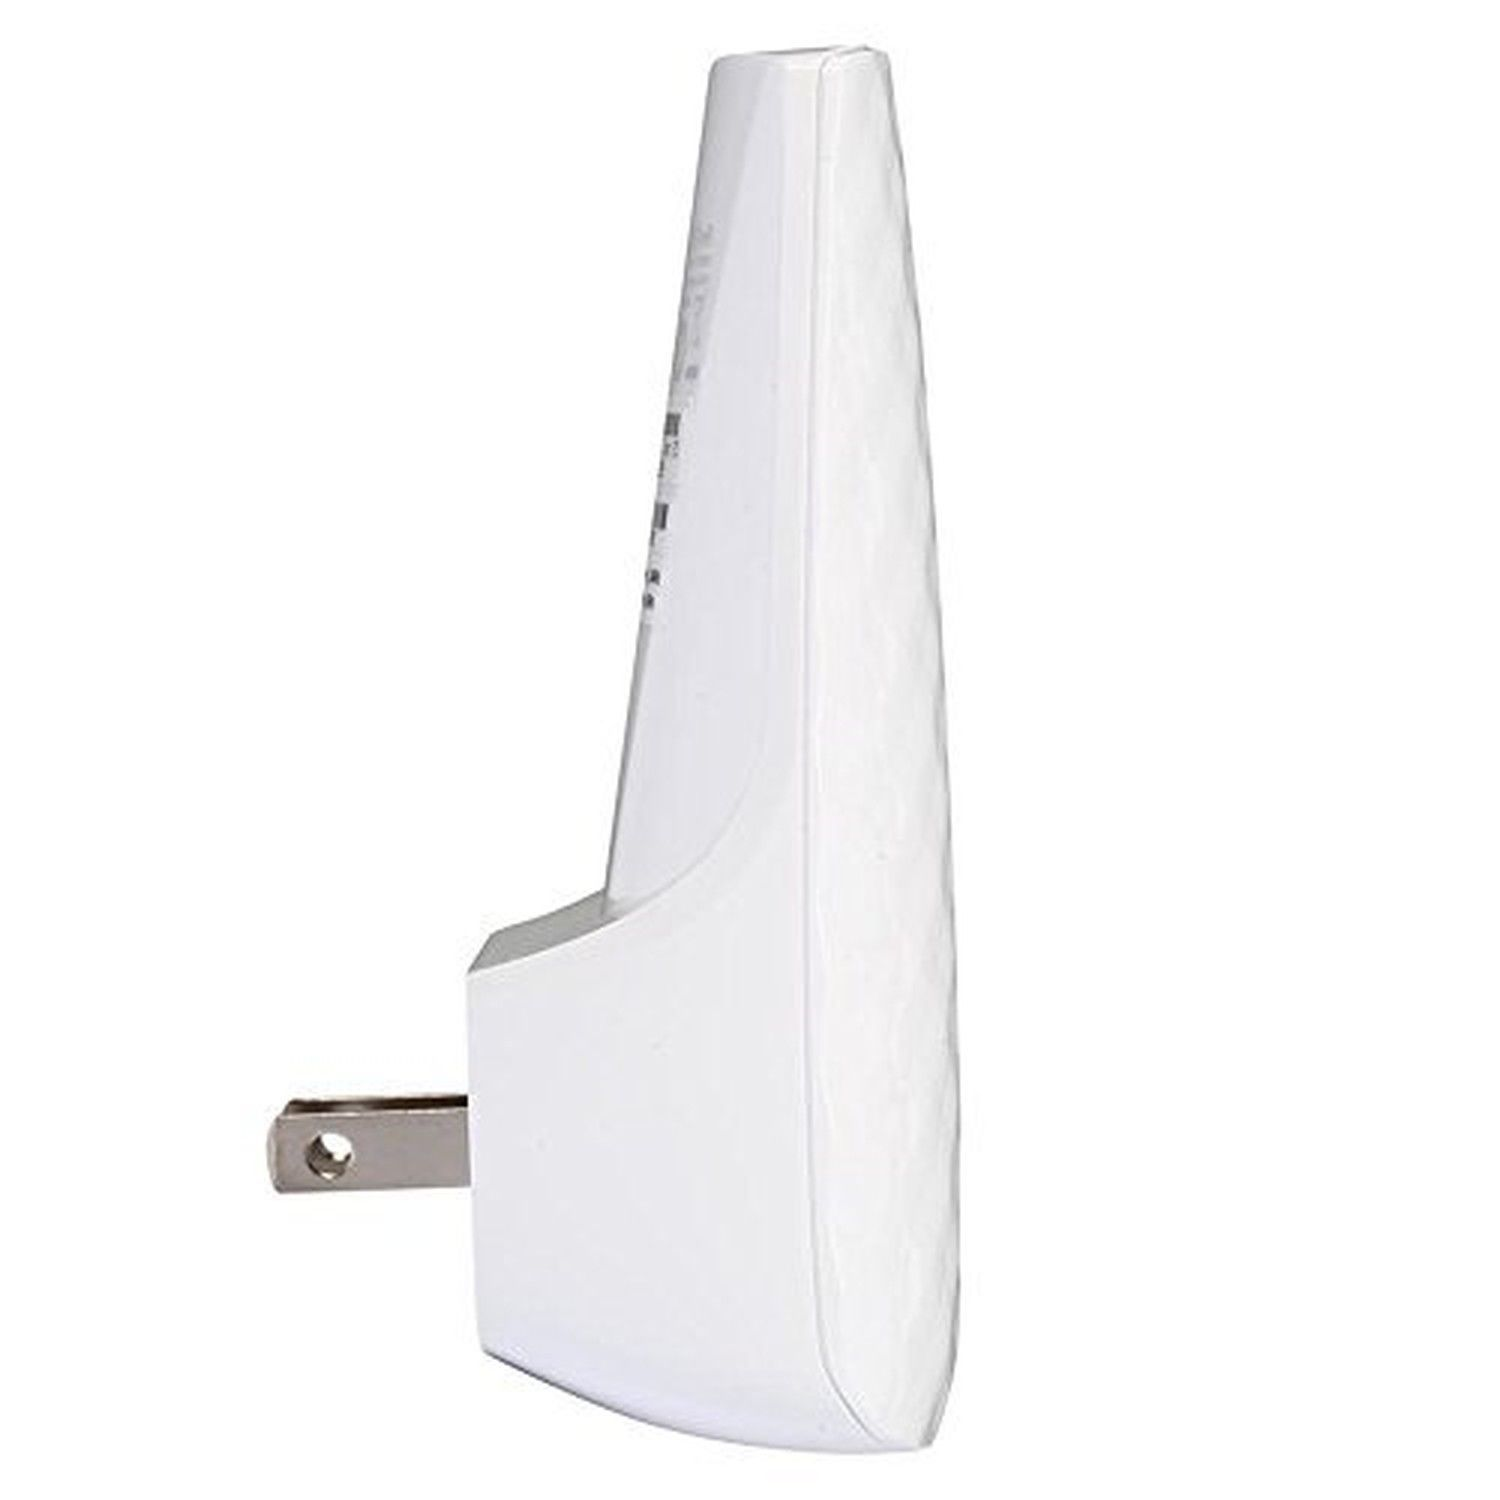 TP-Link AC750 Dual Band WiFi Range Extender Extends WiFi to Smart Home & Alex...